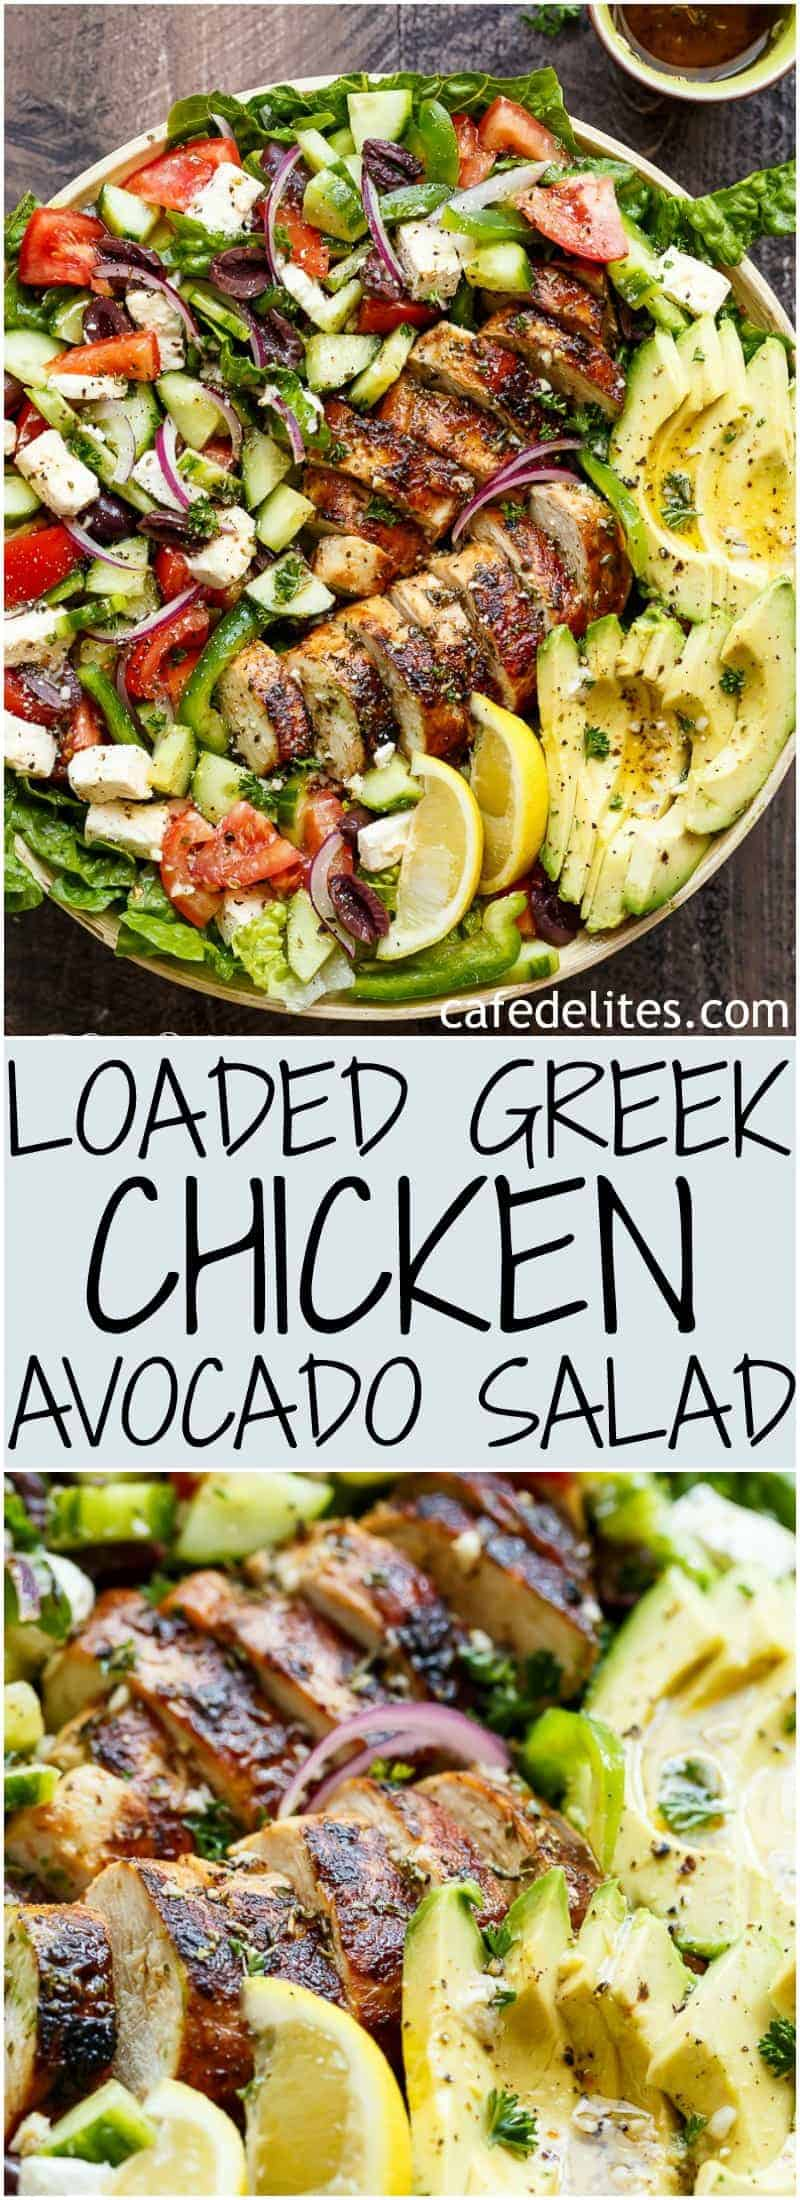 Loaded Greek Chicken Avocado Salad is another meal in a salad! Full of Greek flavours and a 5-ingredient dressing that doubles as a marinade!   https://cafedelites.com